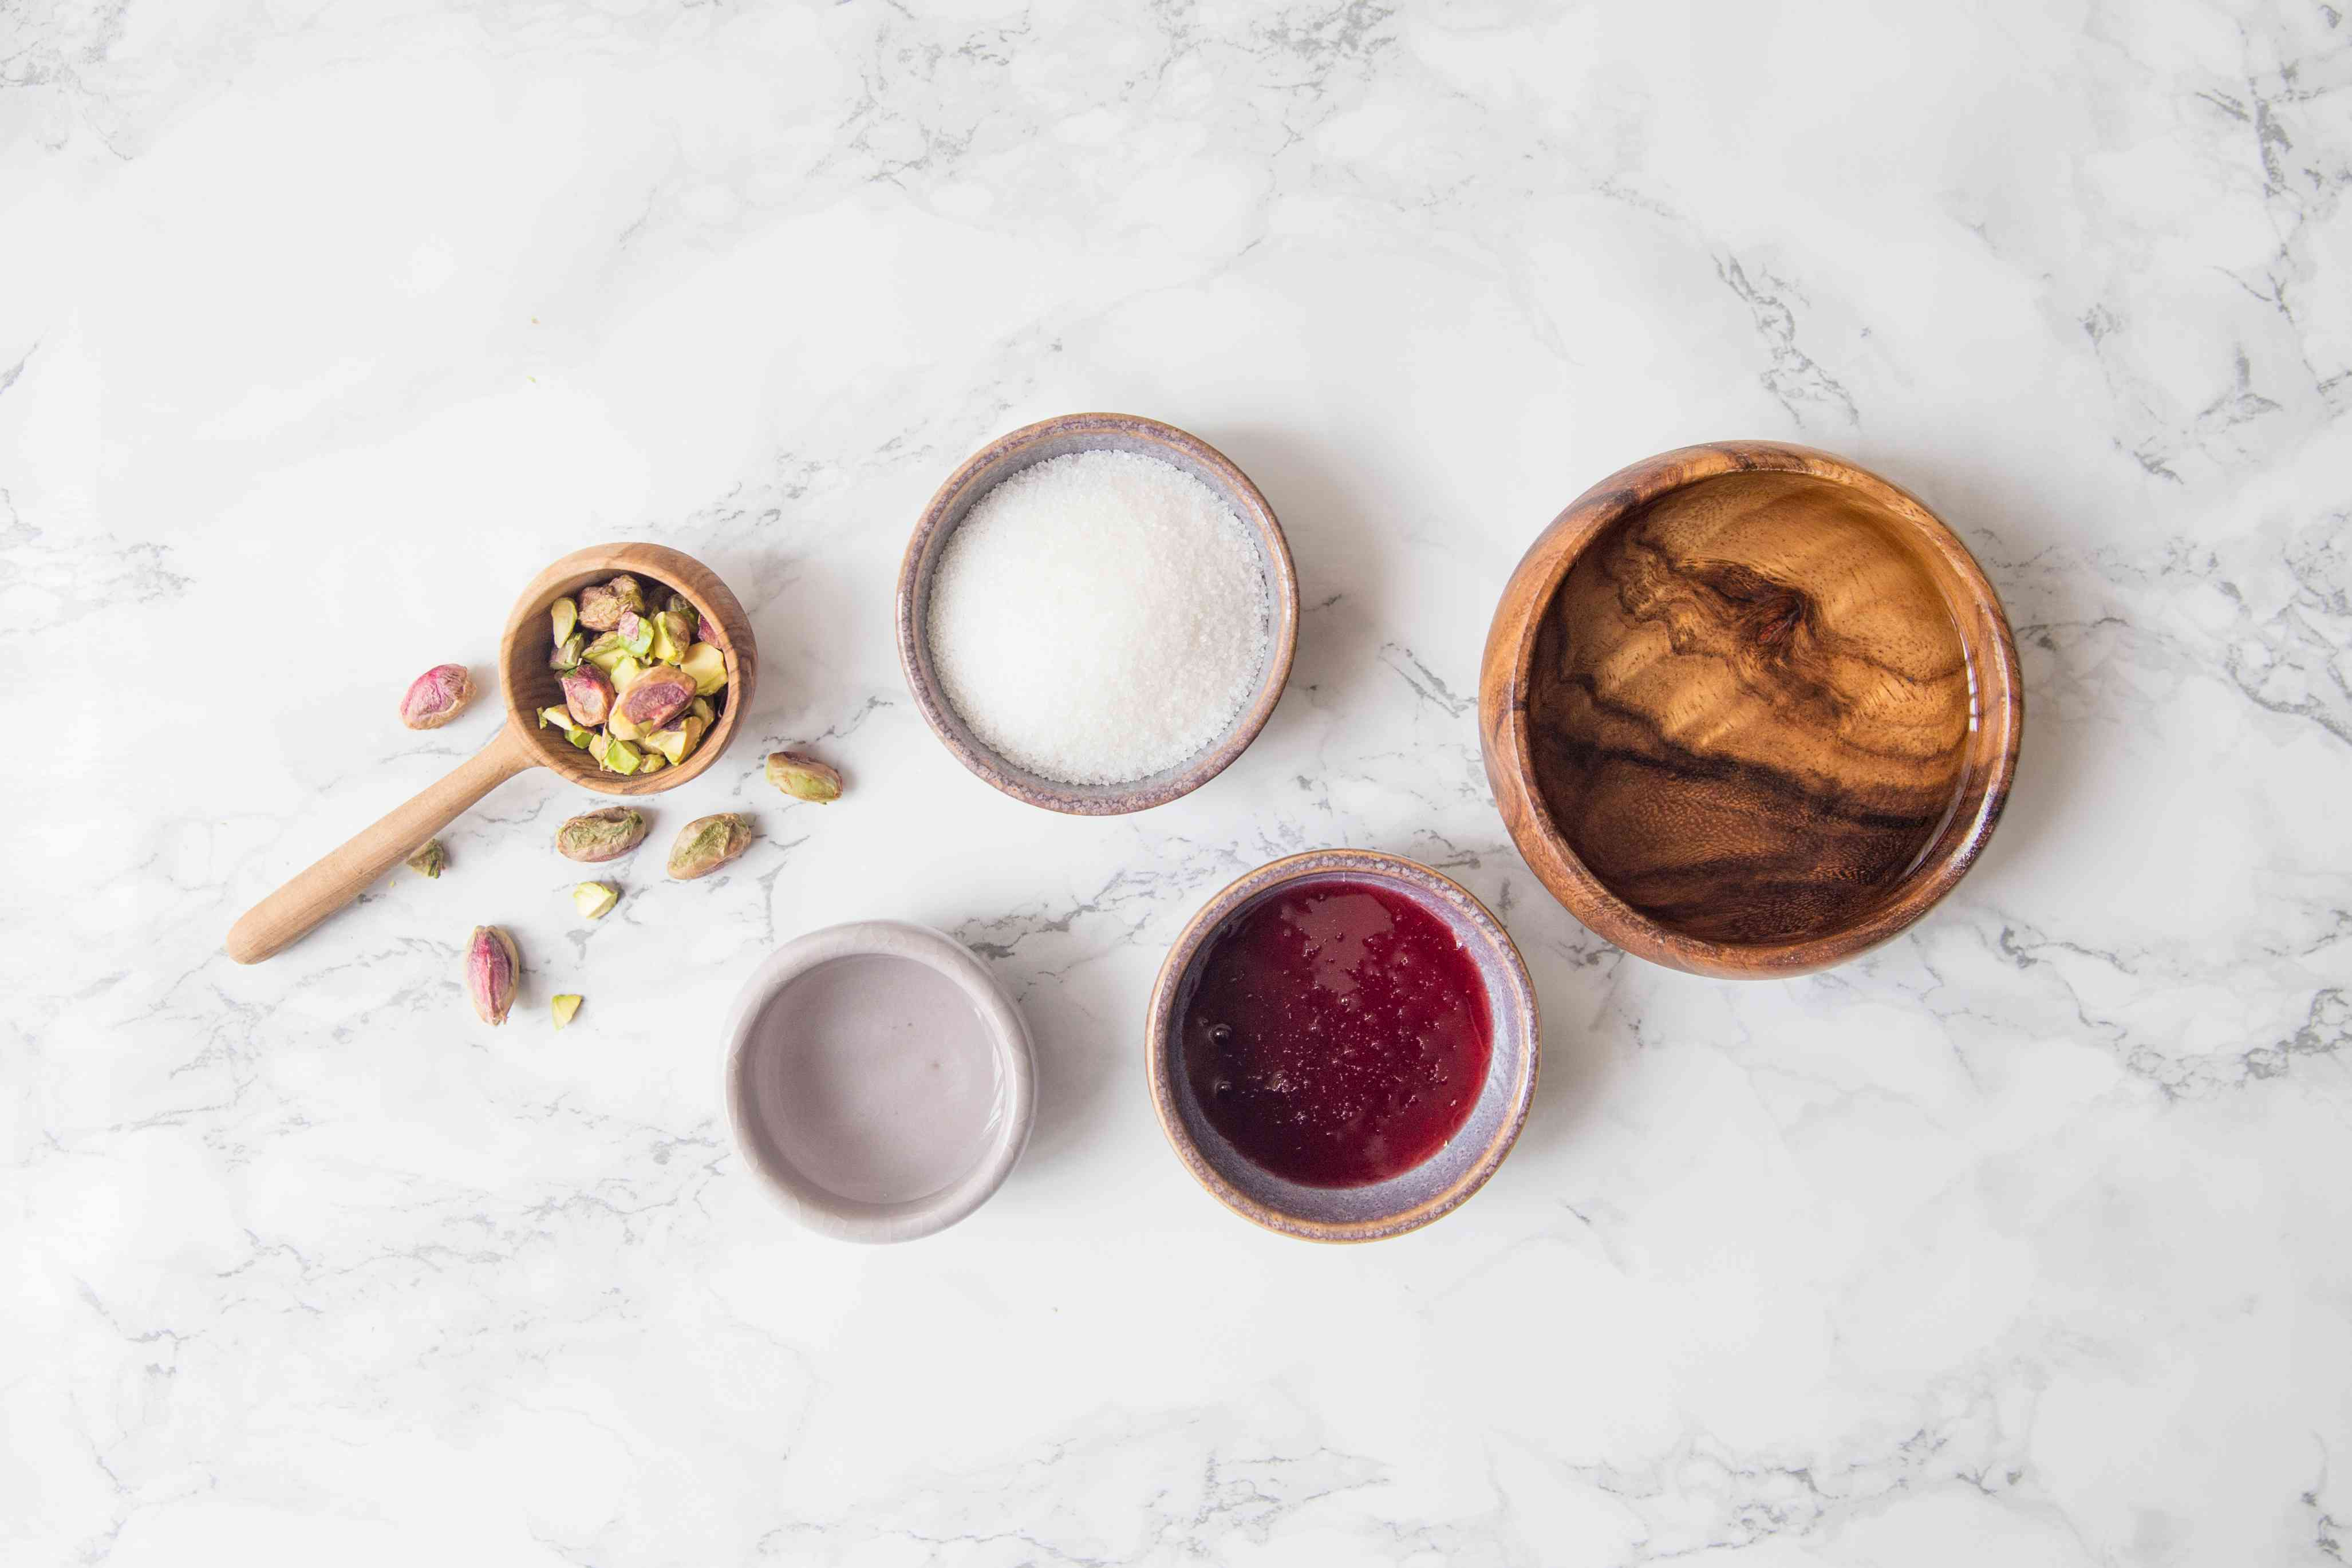 Ingredients for rosewater syrup